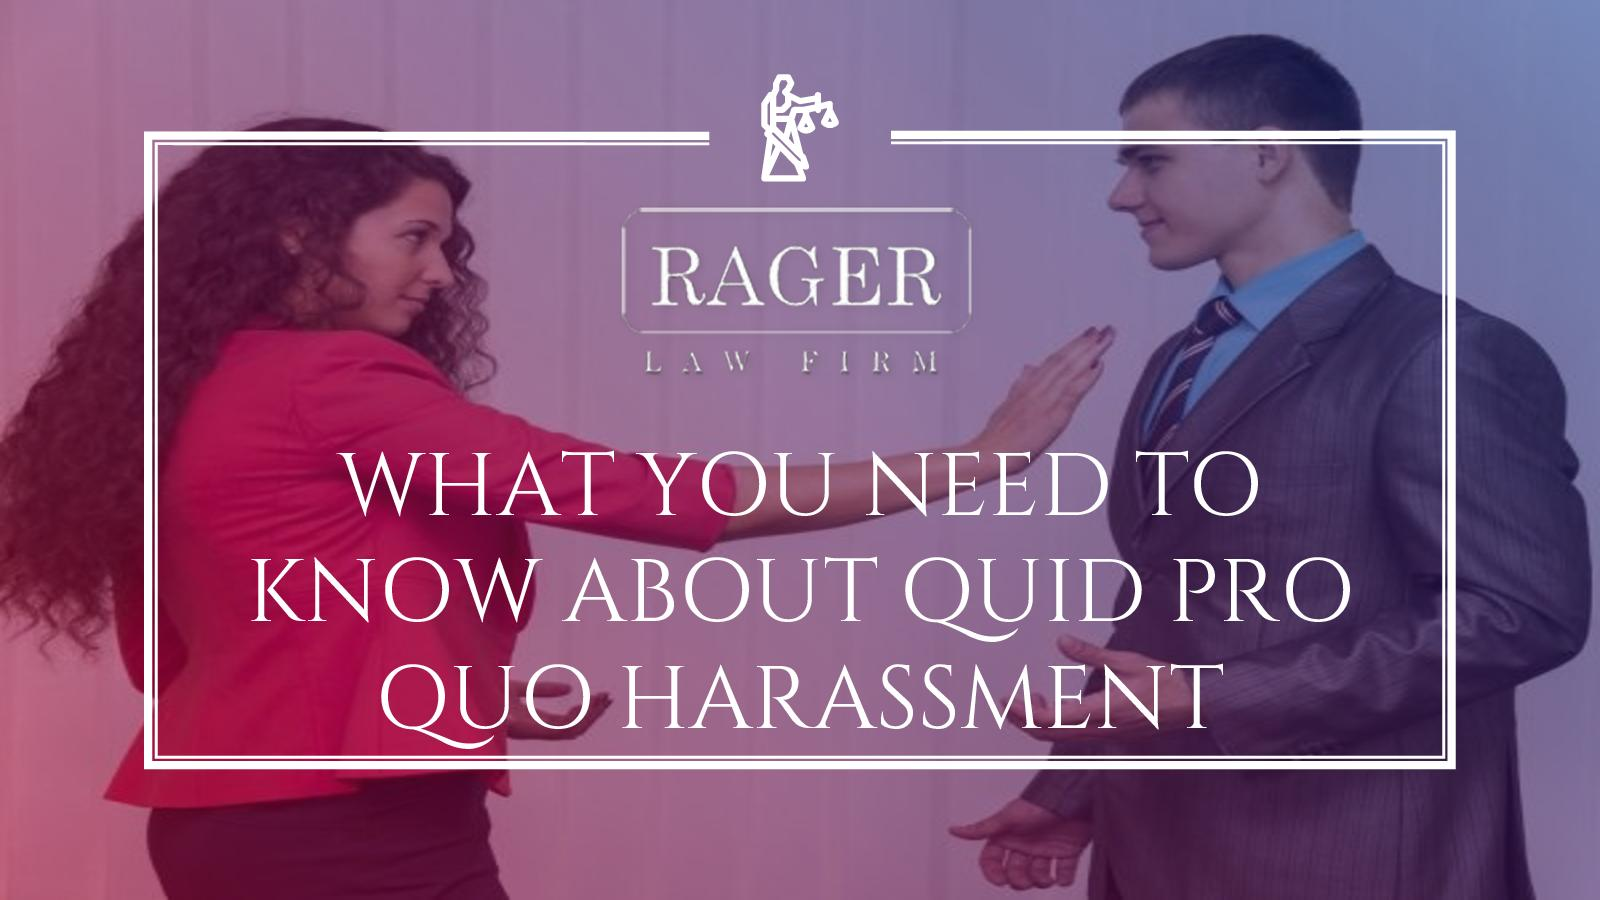 Calaméo - What You Need To Know About Quid Pro Quo Harassment